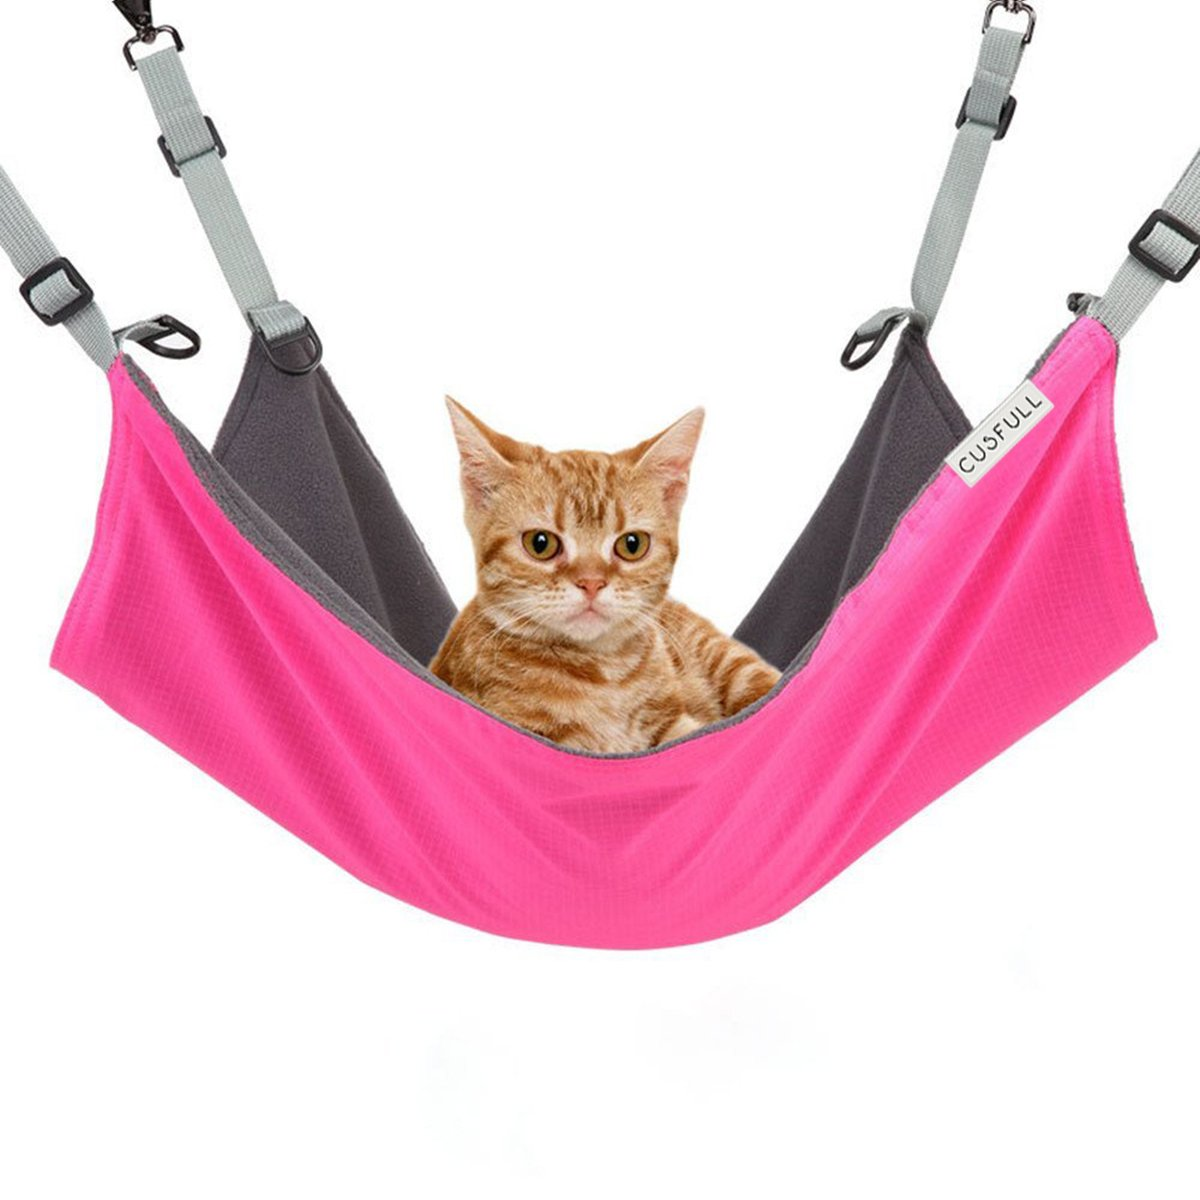 Cusfull Cat Hammock Bed Comfortable Hanging Pet Hammock Bed for Cats Small Dogs Rabbits Small Animals pink-Red